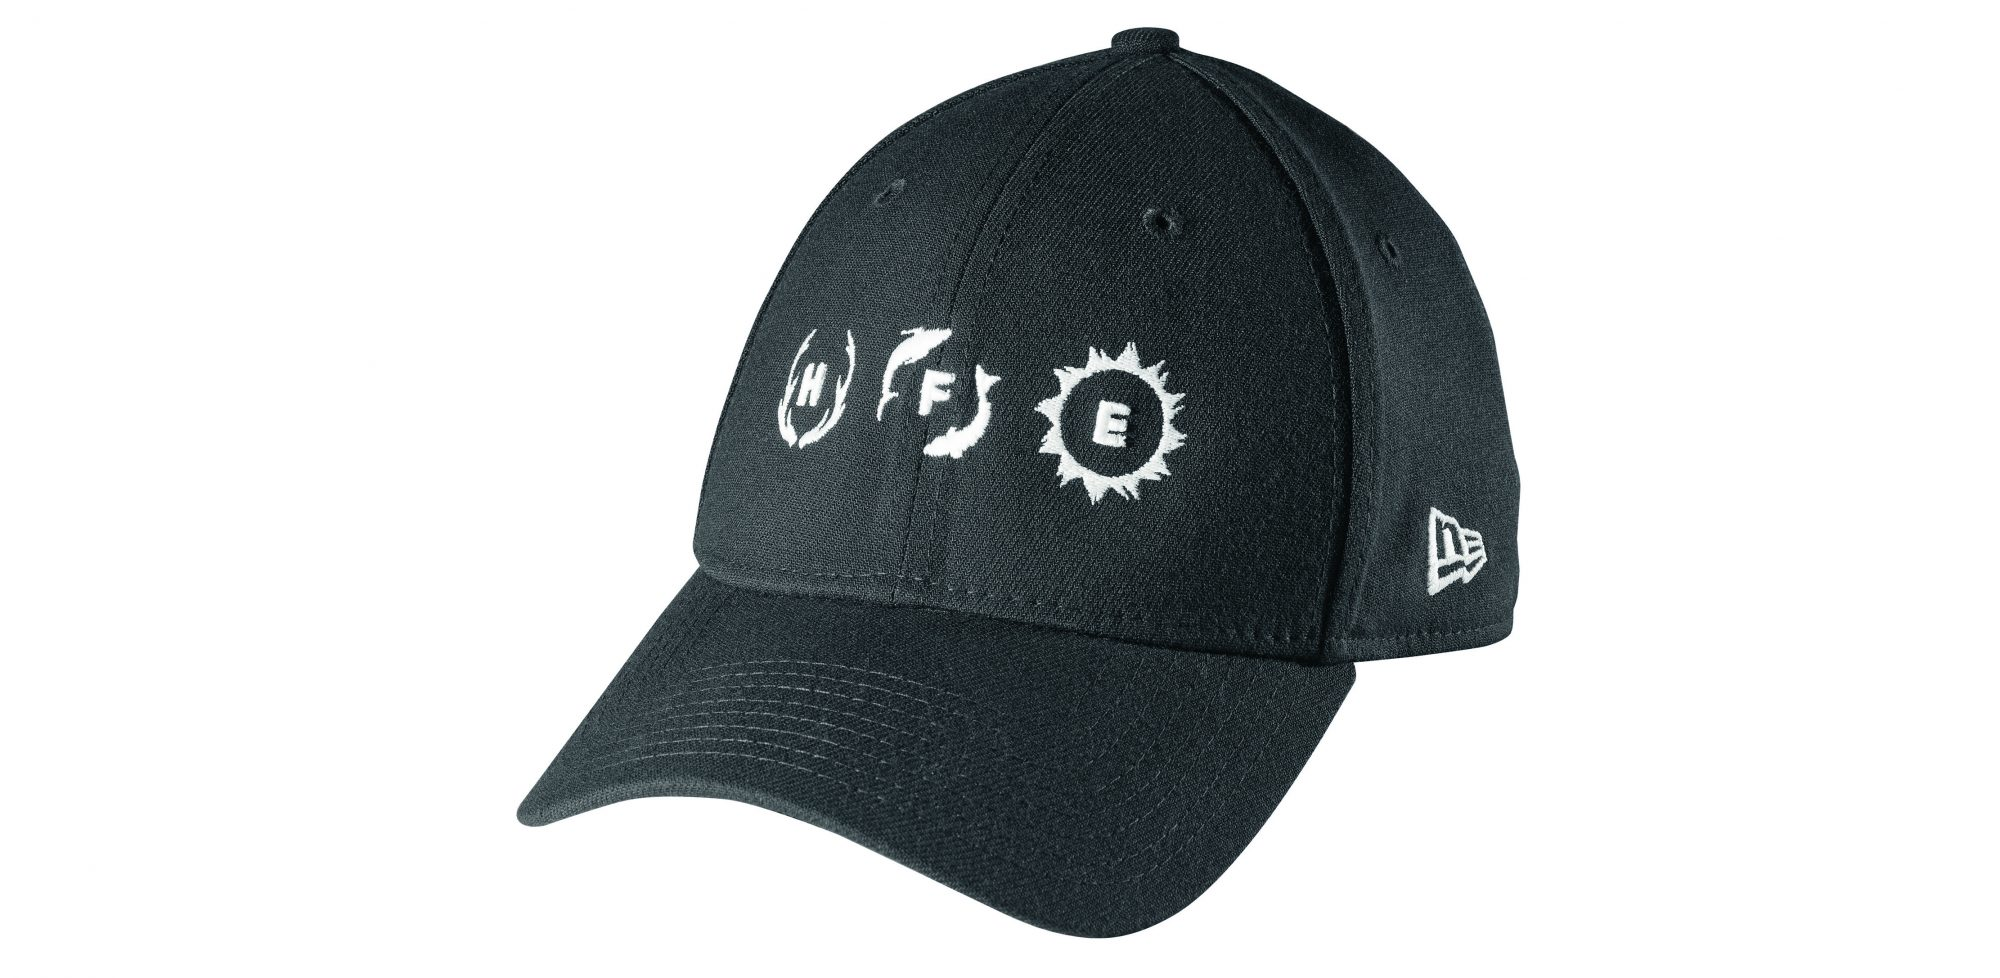 Luke Bryan's 32-Bridge HFE Men's Cap